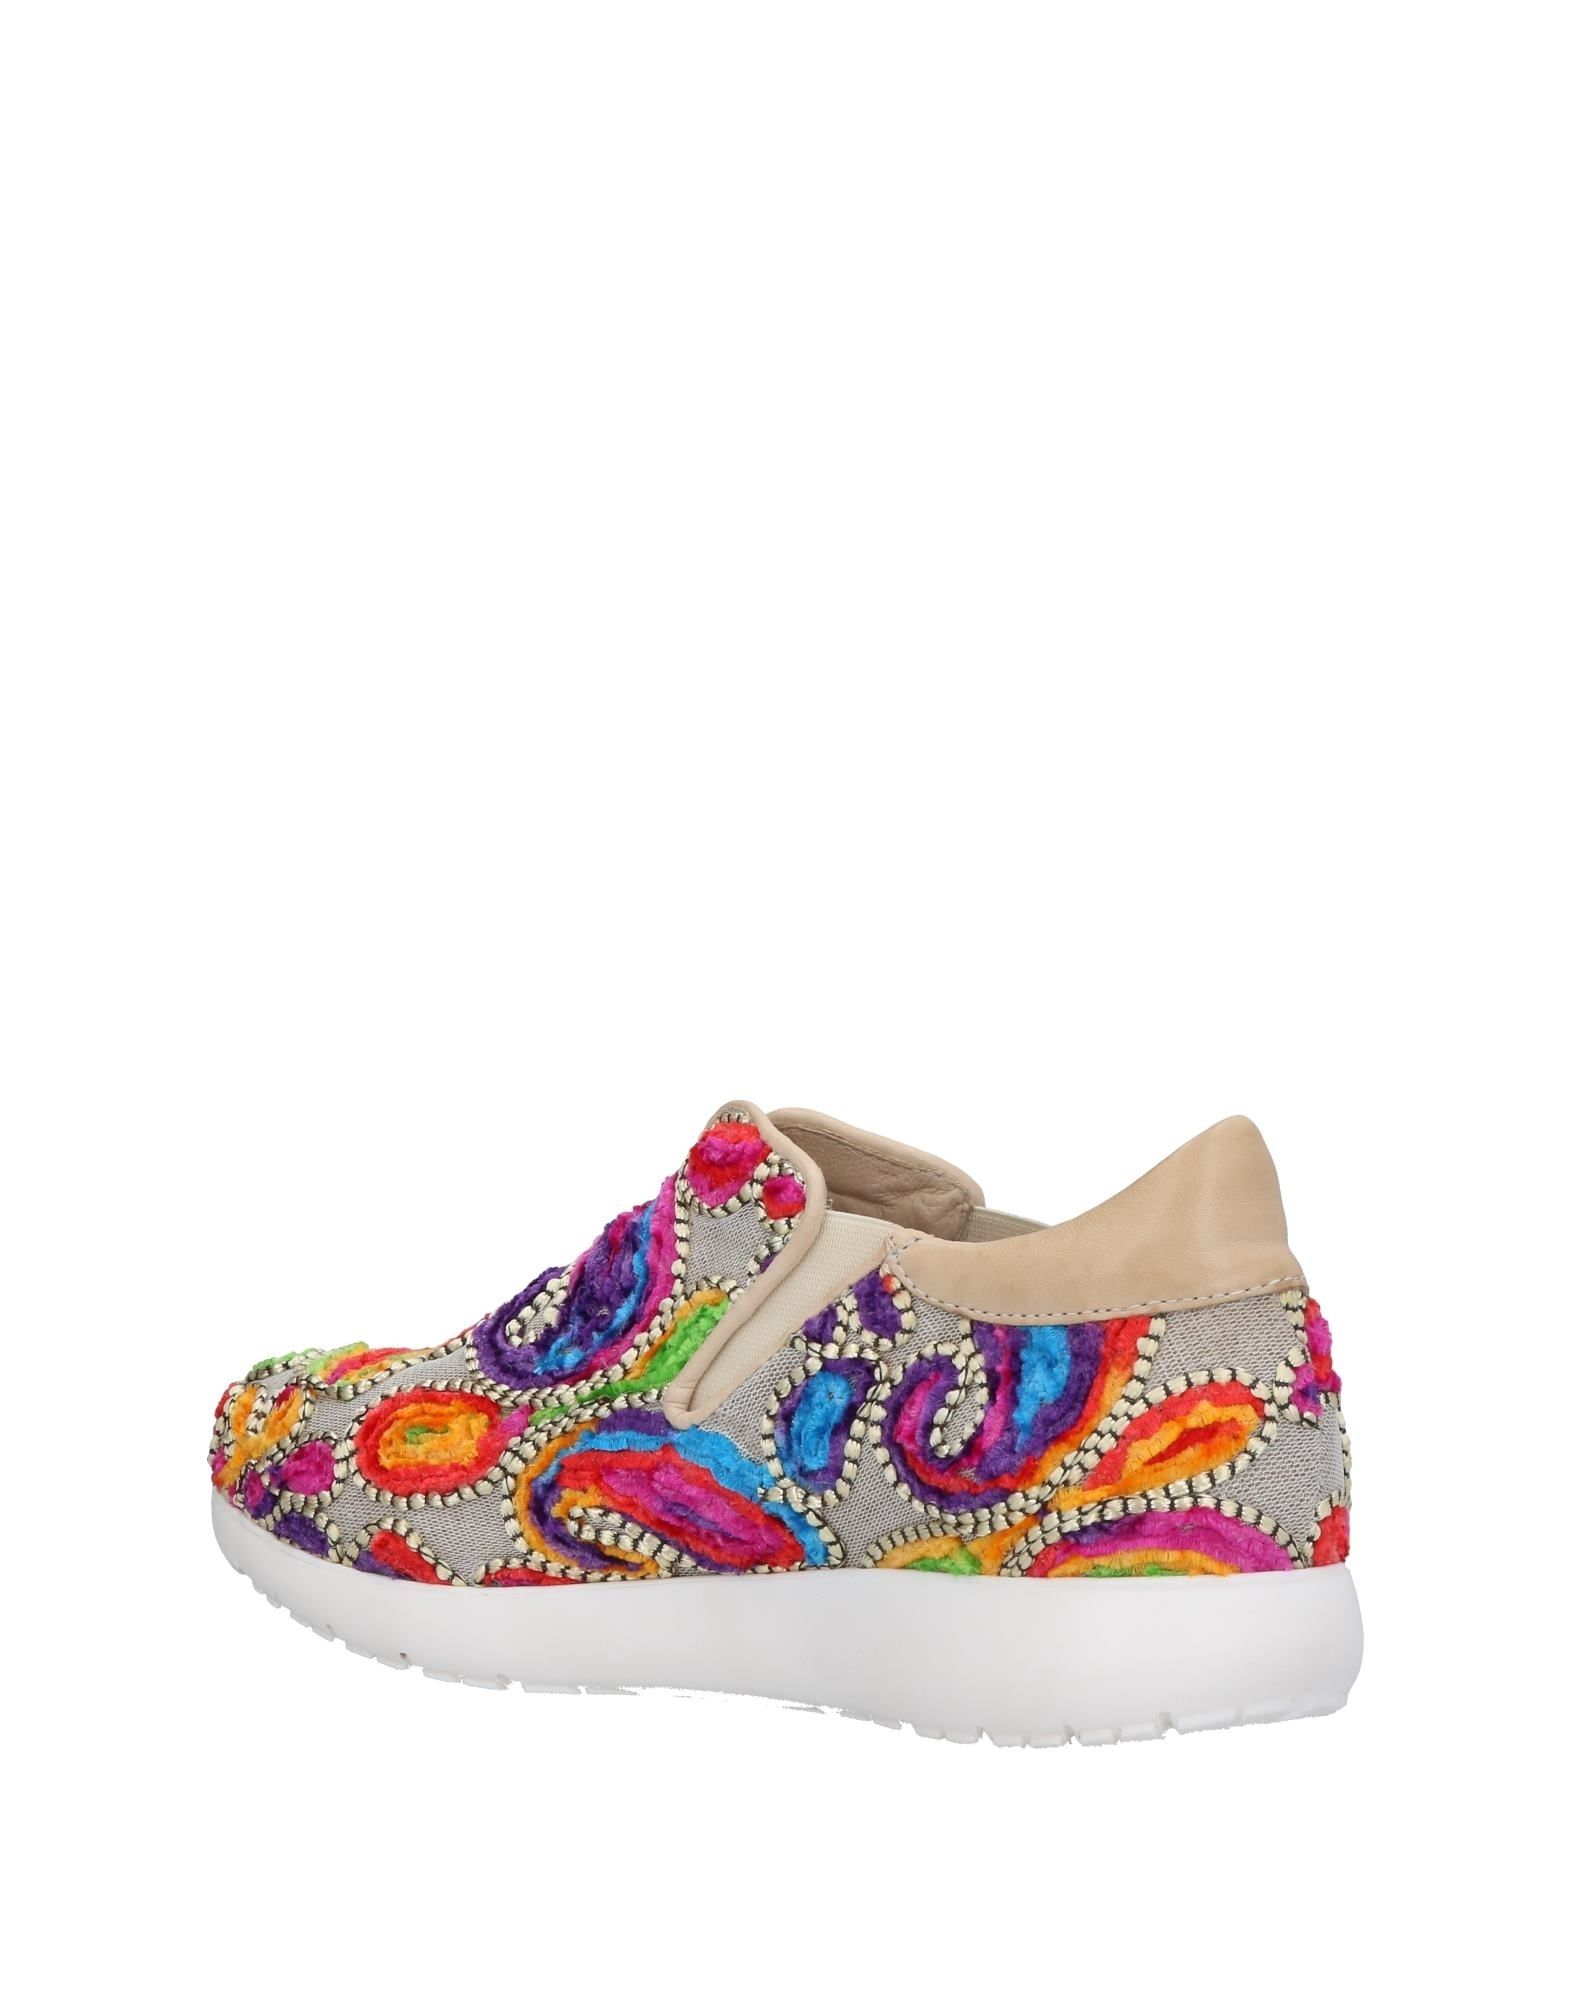 Sneakers Andìa Fora Femme - Sneakers Andìa Fora sur